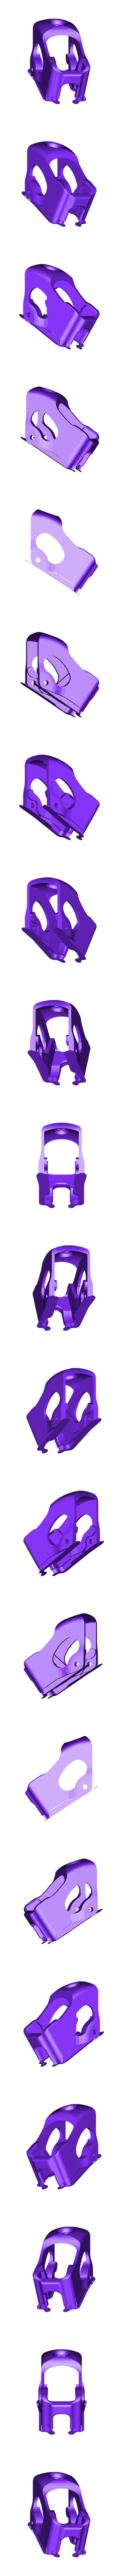 Hat (with support) 0518.stl Download STL file Cleat for the sail • 3D printable object, ClementProux